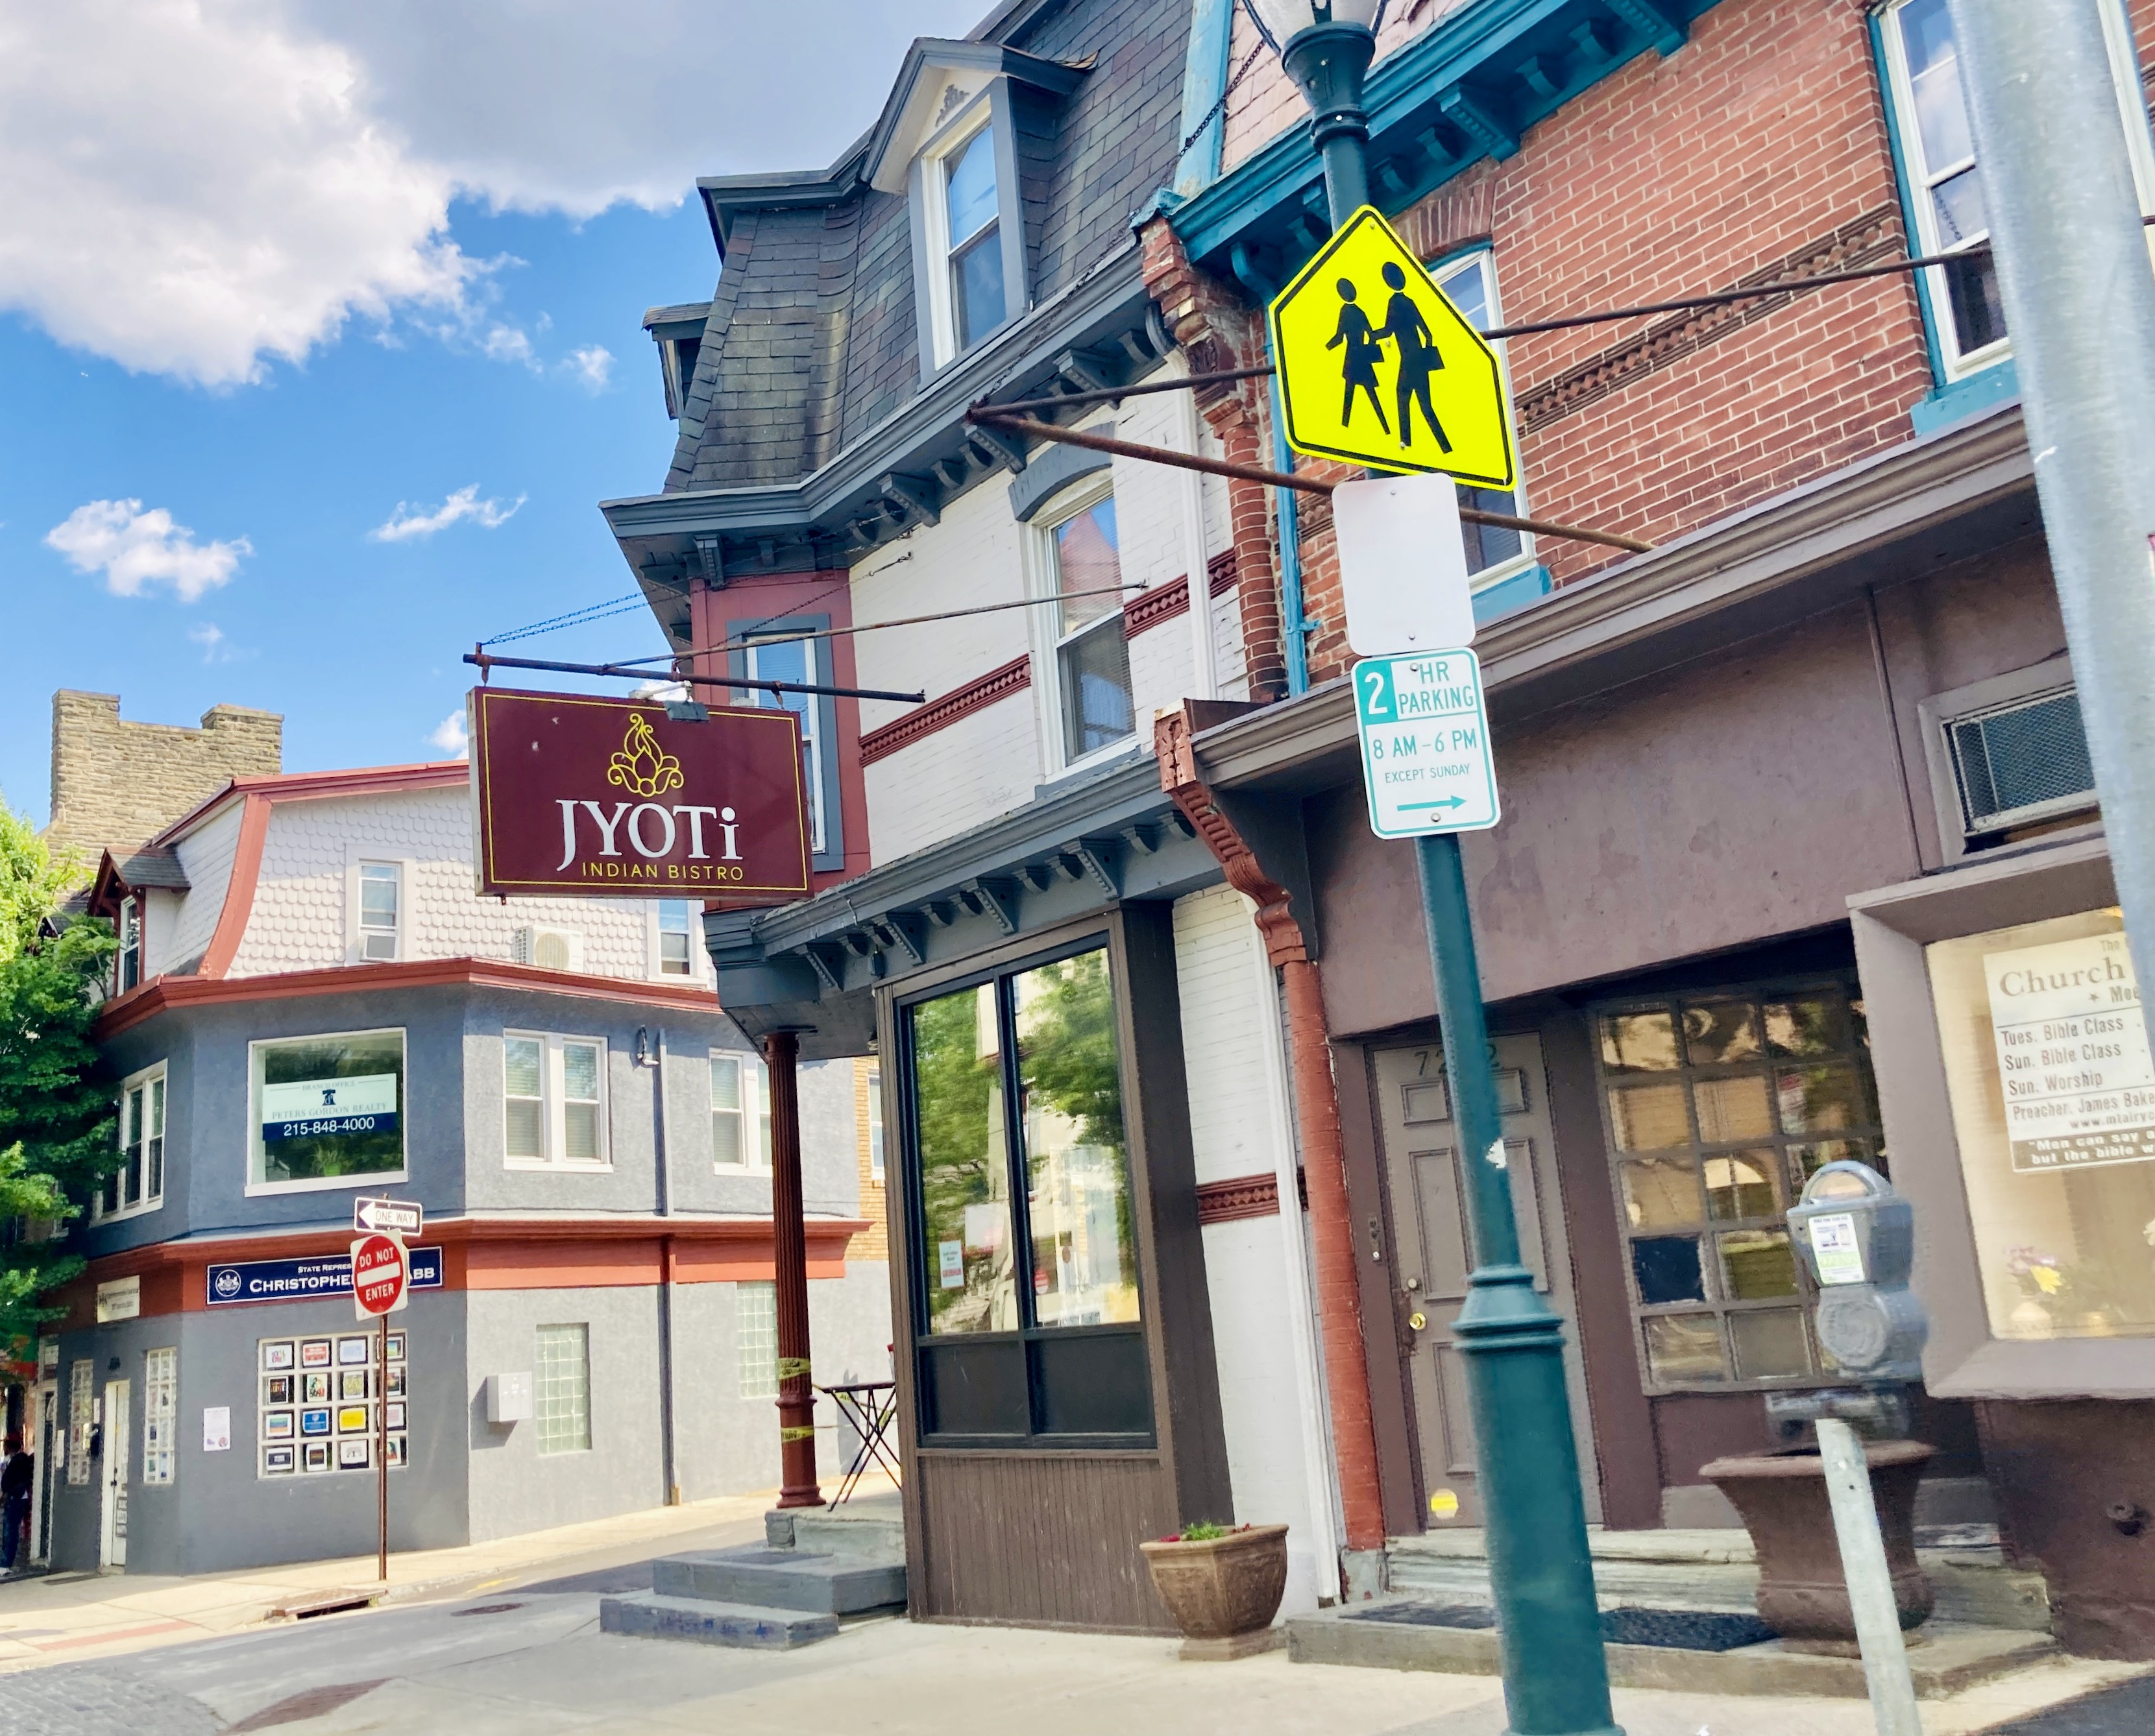 Jyoti Bistro in Mount Airy, PA